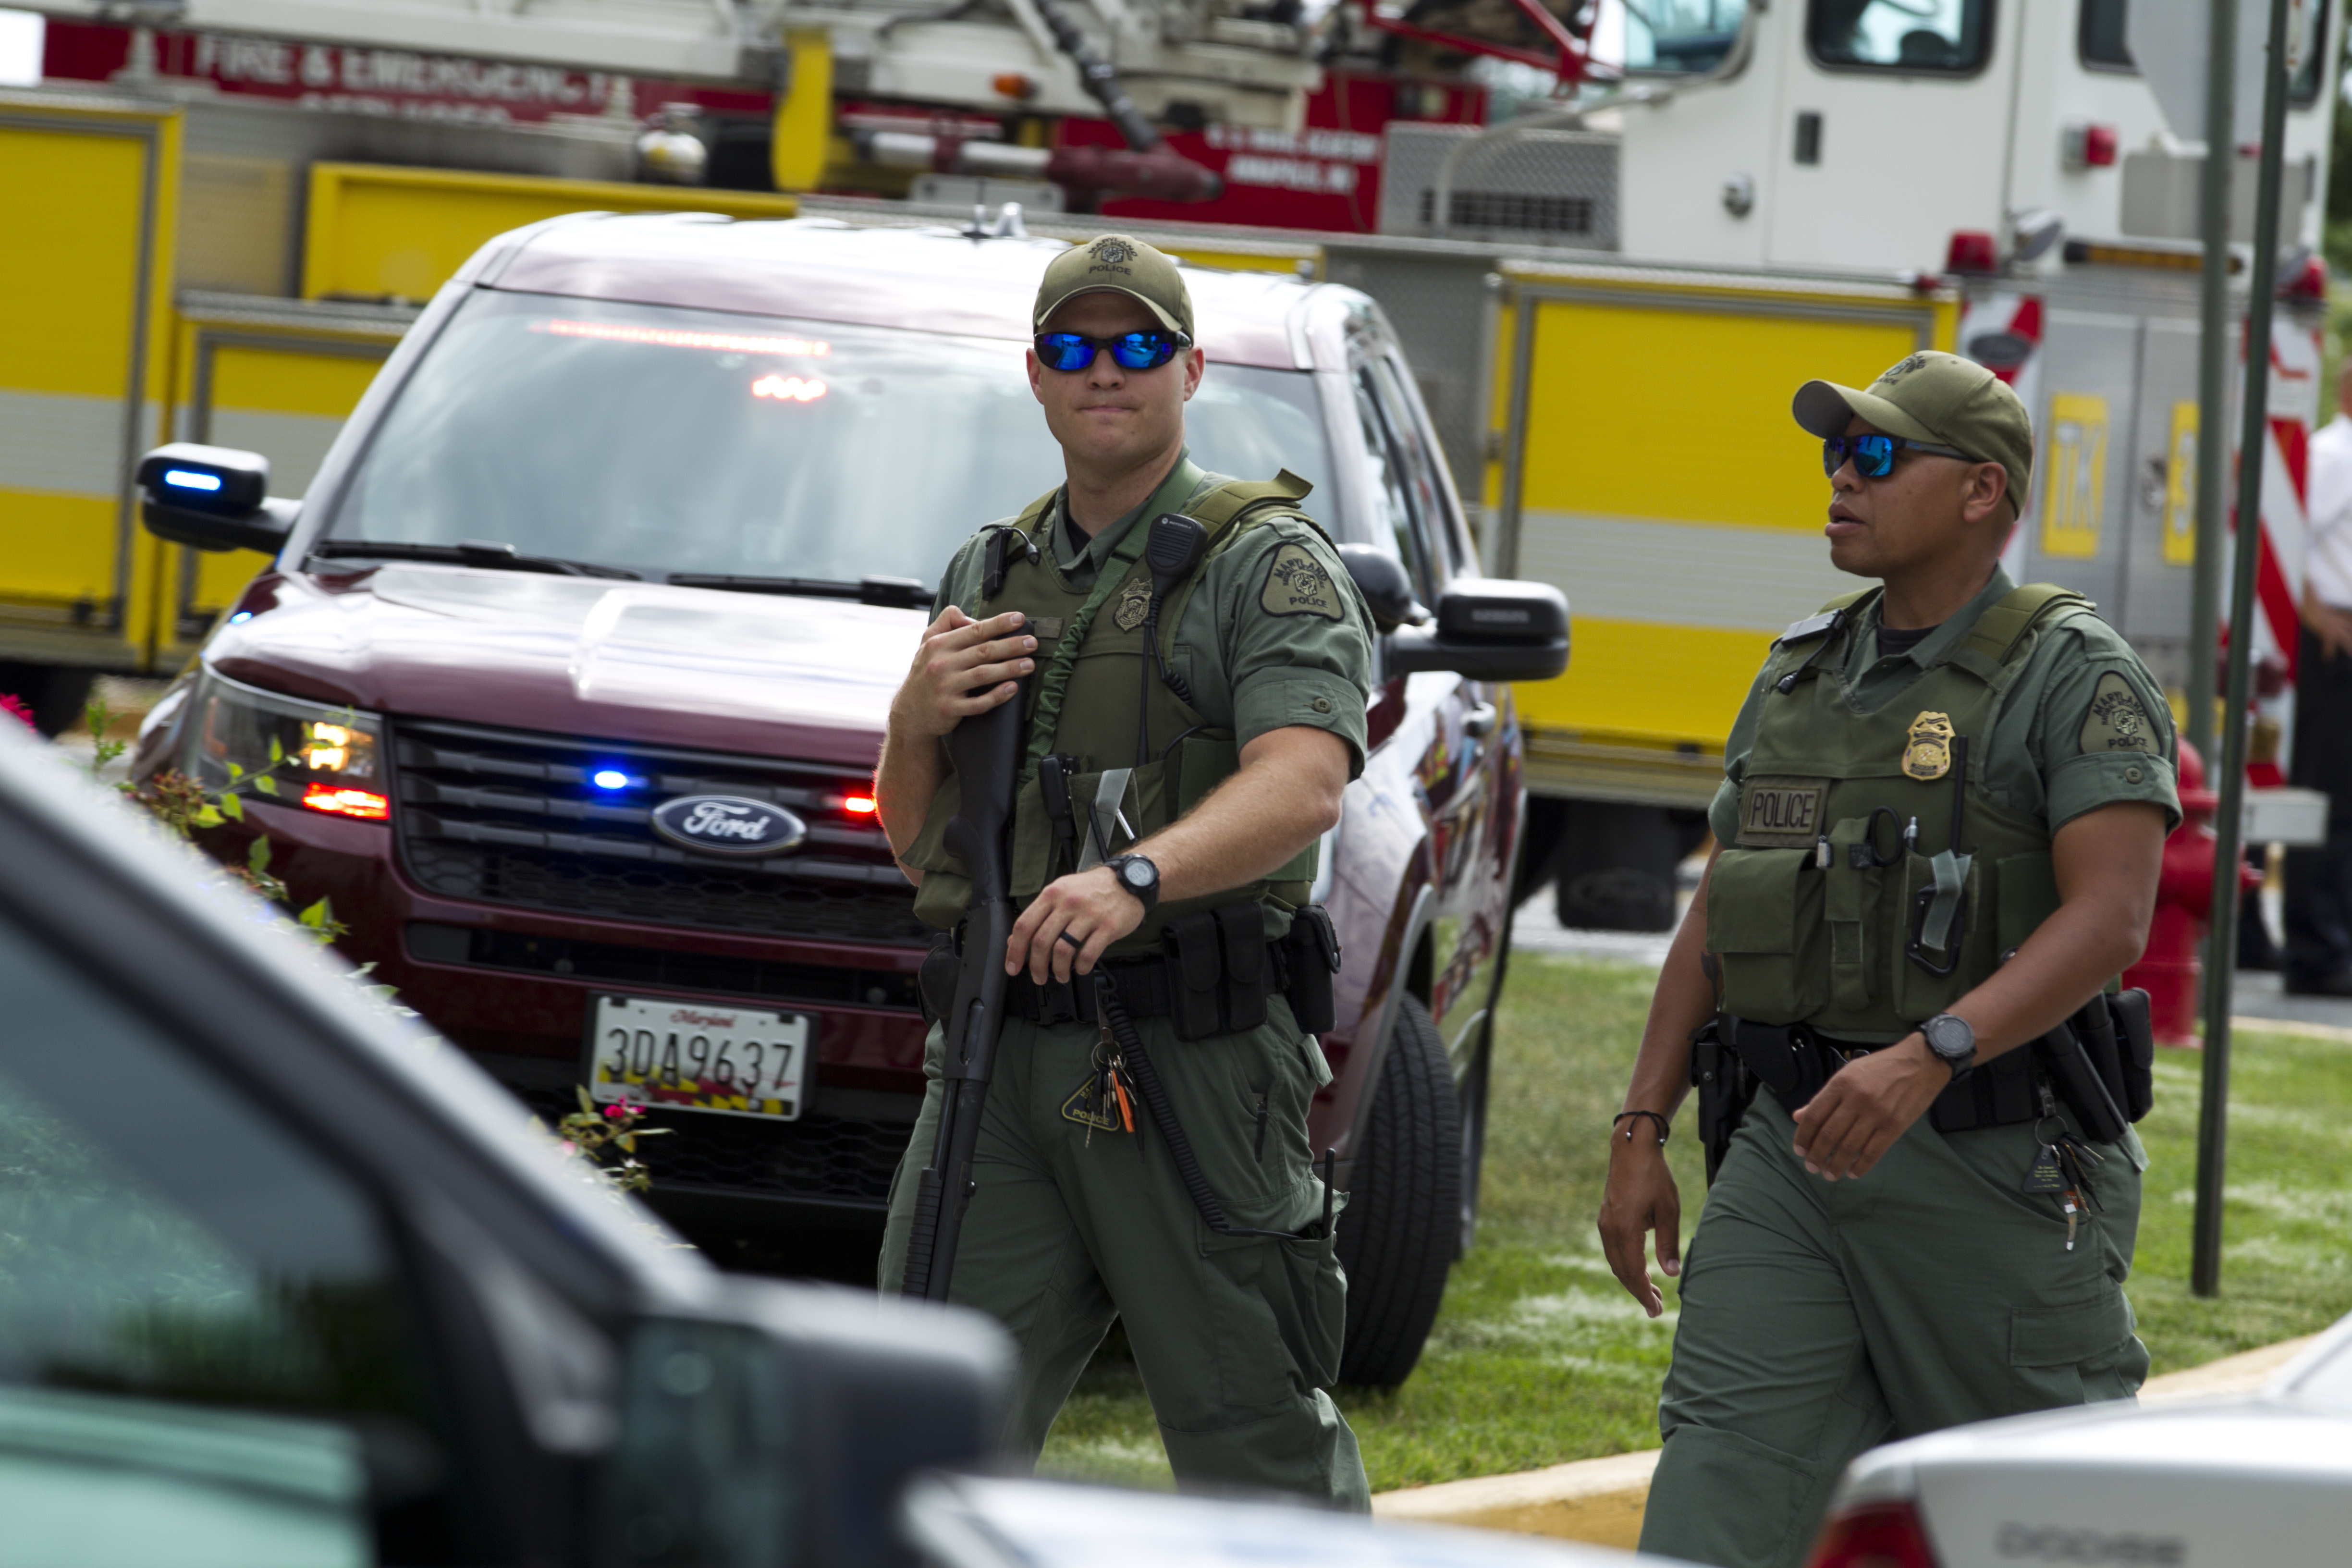 <div class='meta'><div class='origin-logo' data-origin='AP'></div><span class='caption-text' data-credit='AP Photo/Jose Luis Magana'>Maryland police officers patrol the area after multiple people were shot at at The Capital Gazette newspaper in Annapolis, Md., Thursday, June 28, 2018.</span></div>